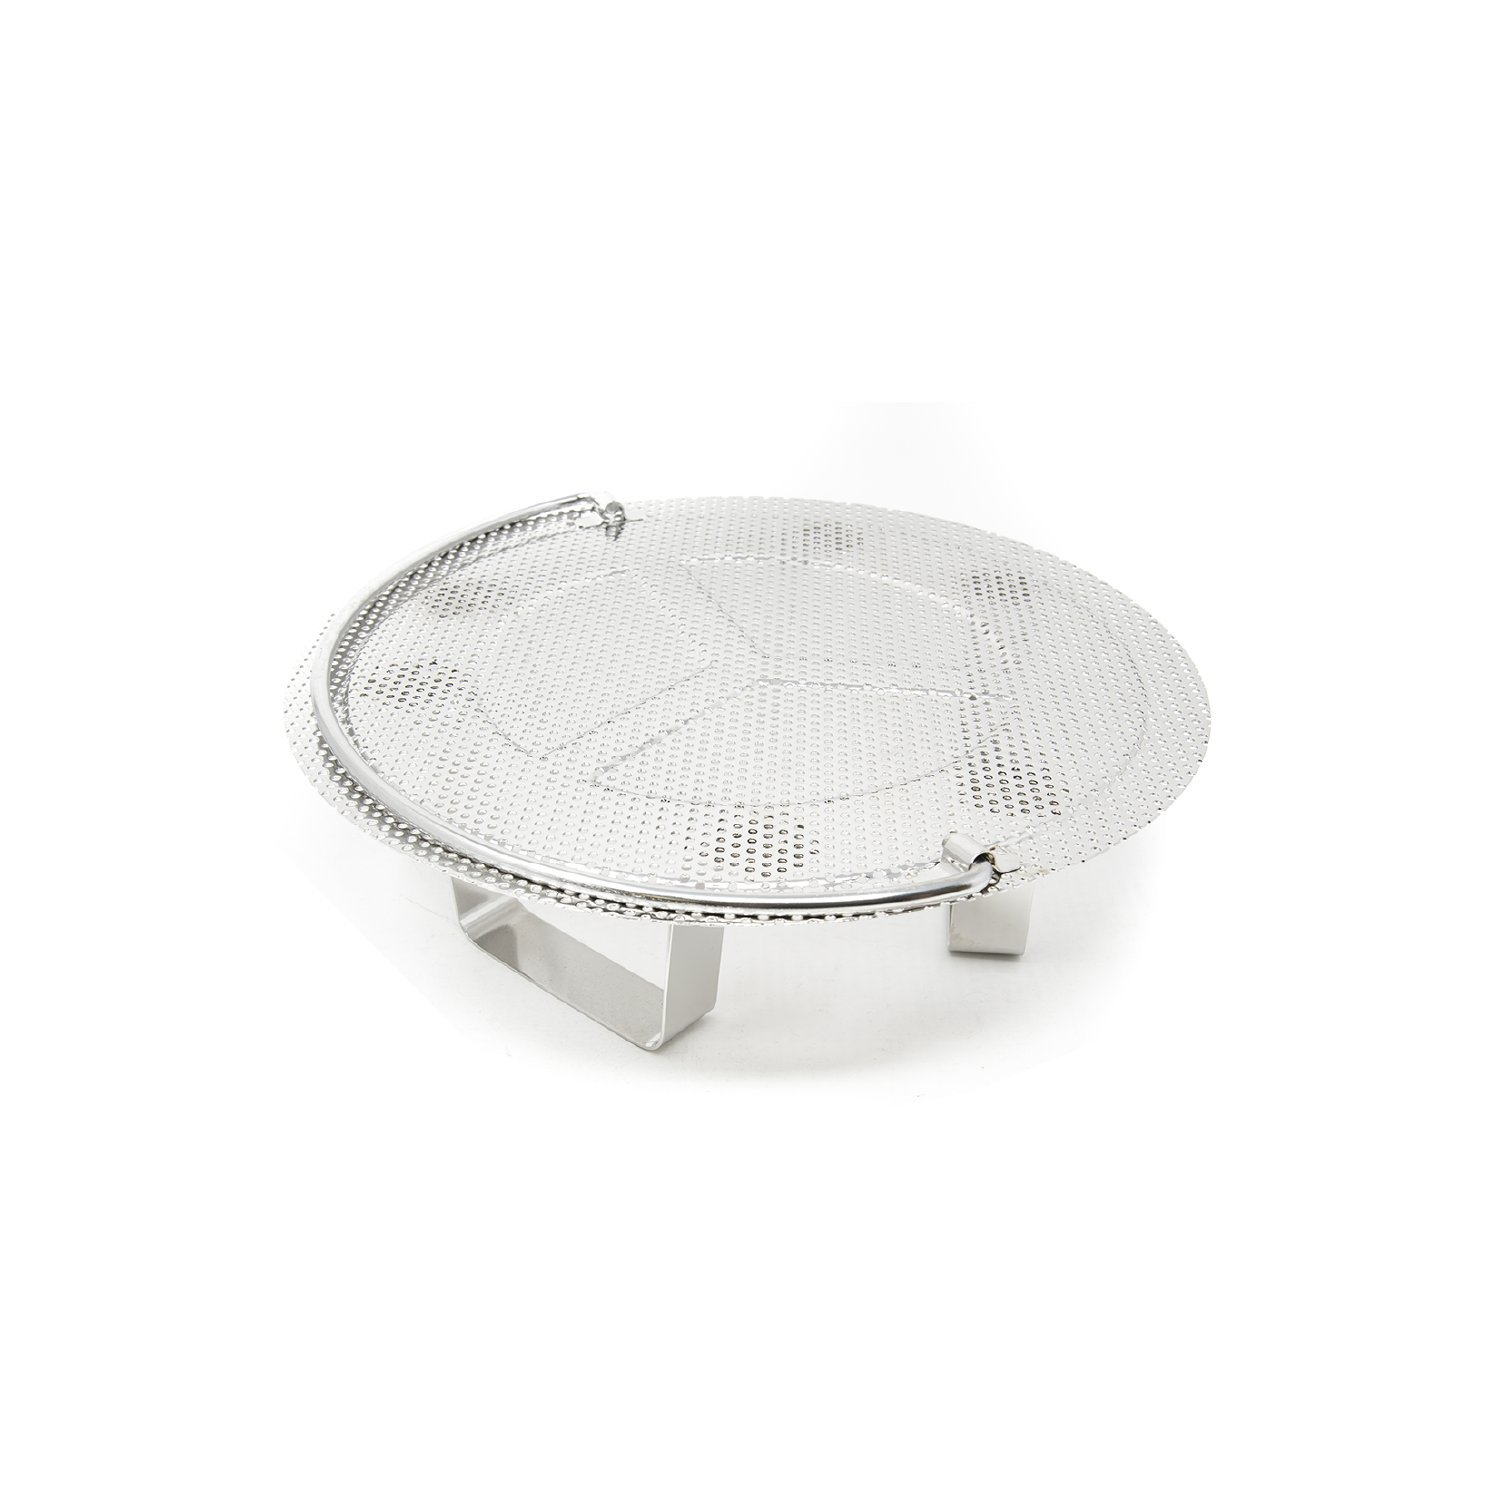 GasOne 30532 S Gas One Beer Filter Pot Stainless Steel False Bottom for Home Brewing Supplies (32 QT), 32QT,